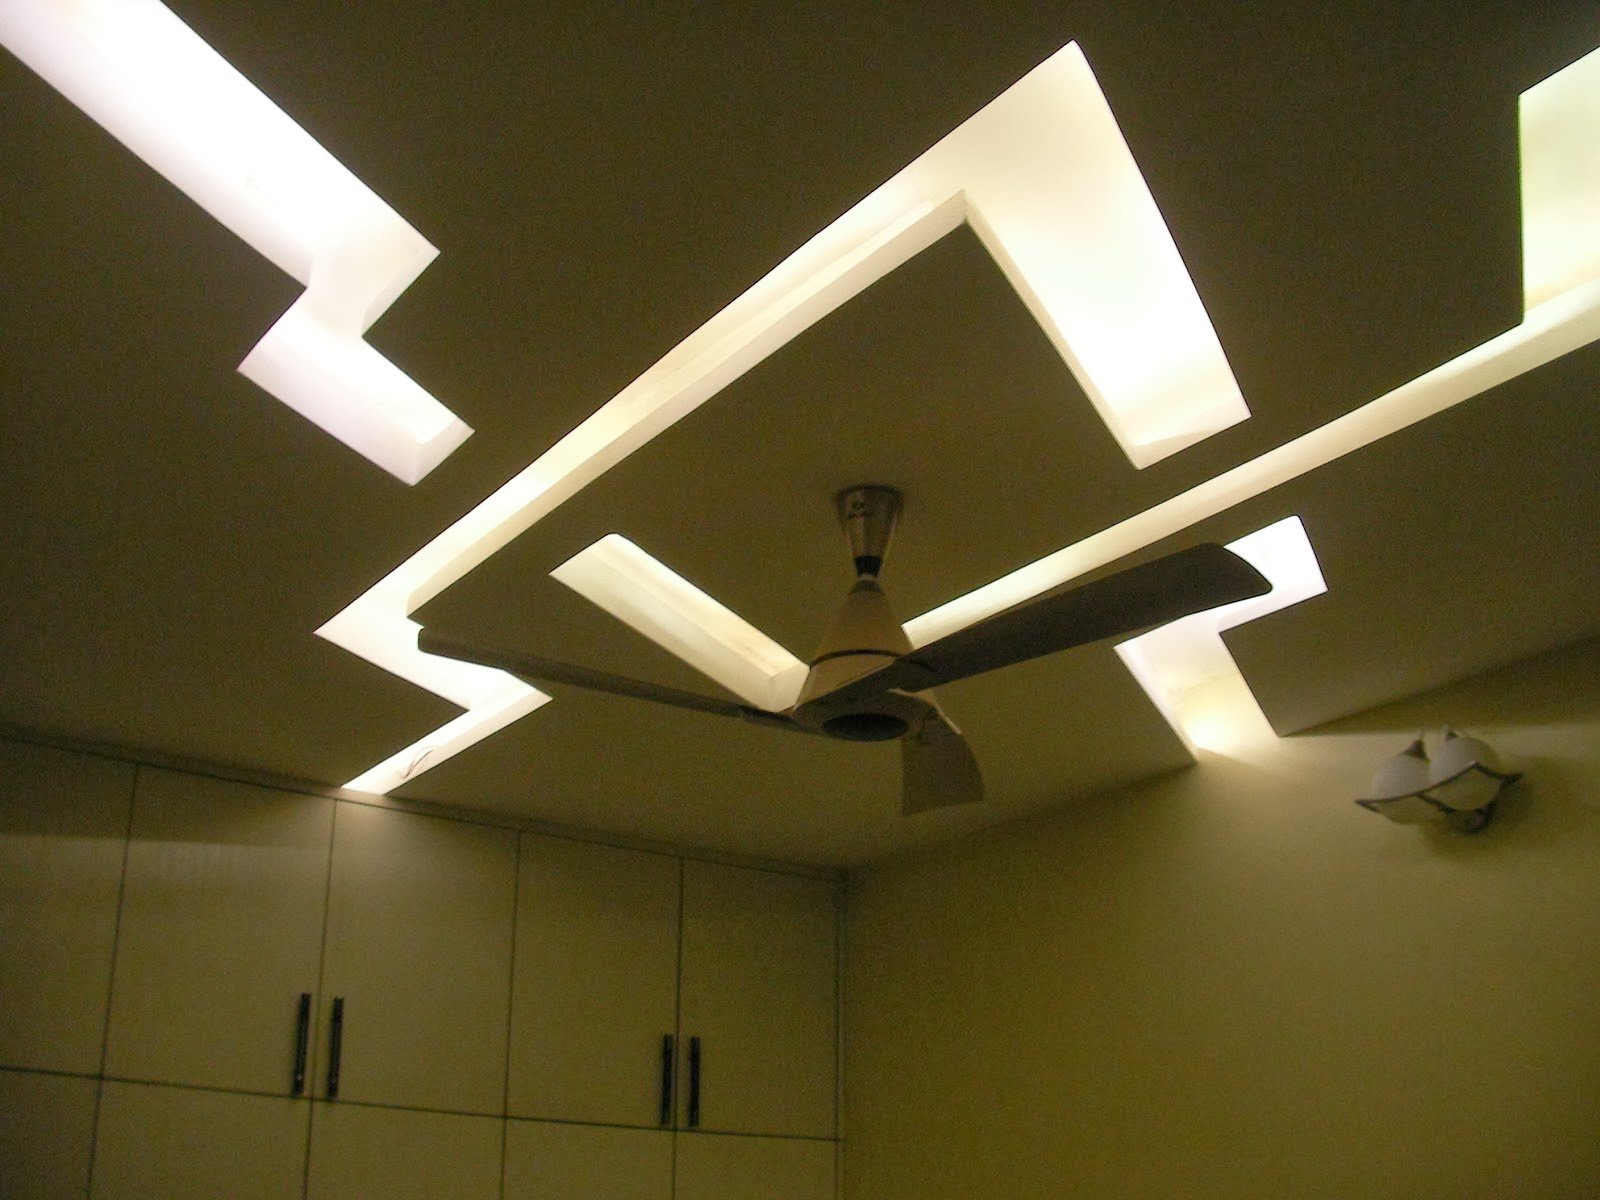 evens construction pvt types false ceiling office main types kitchen generally source